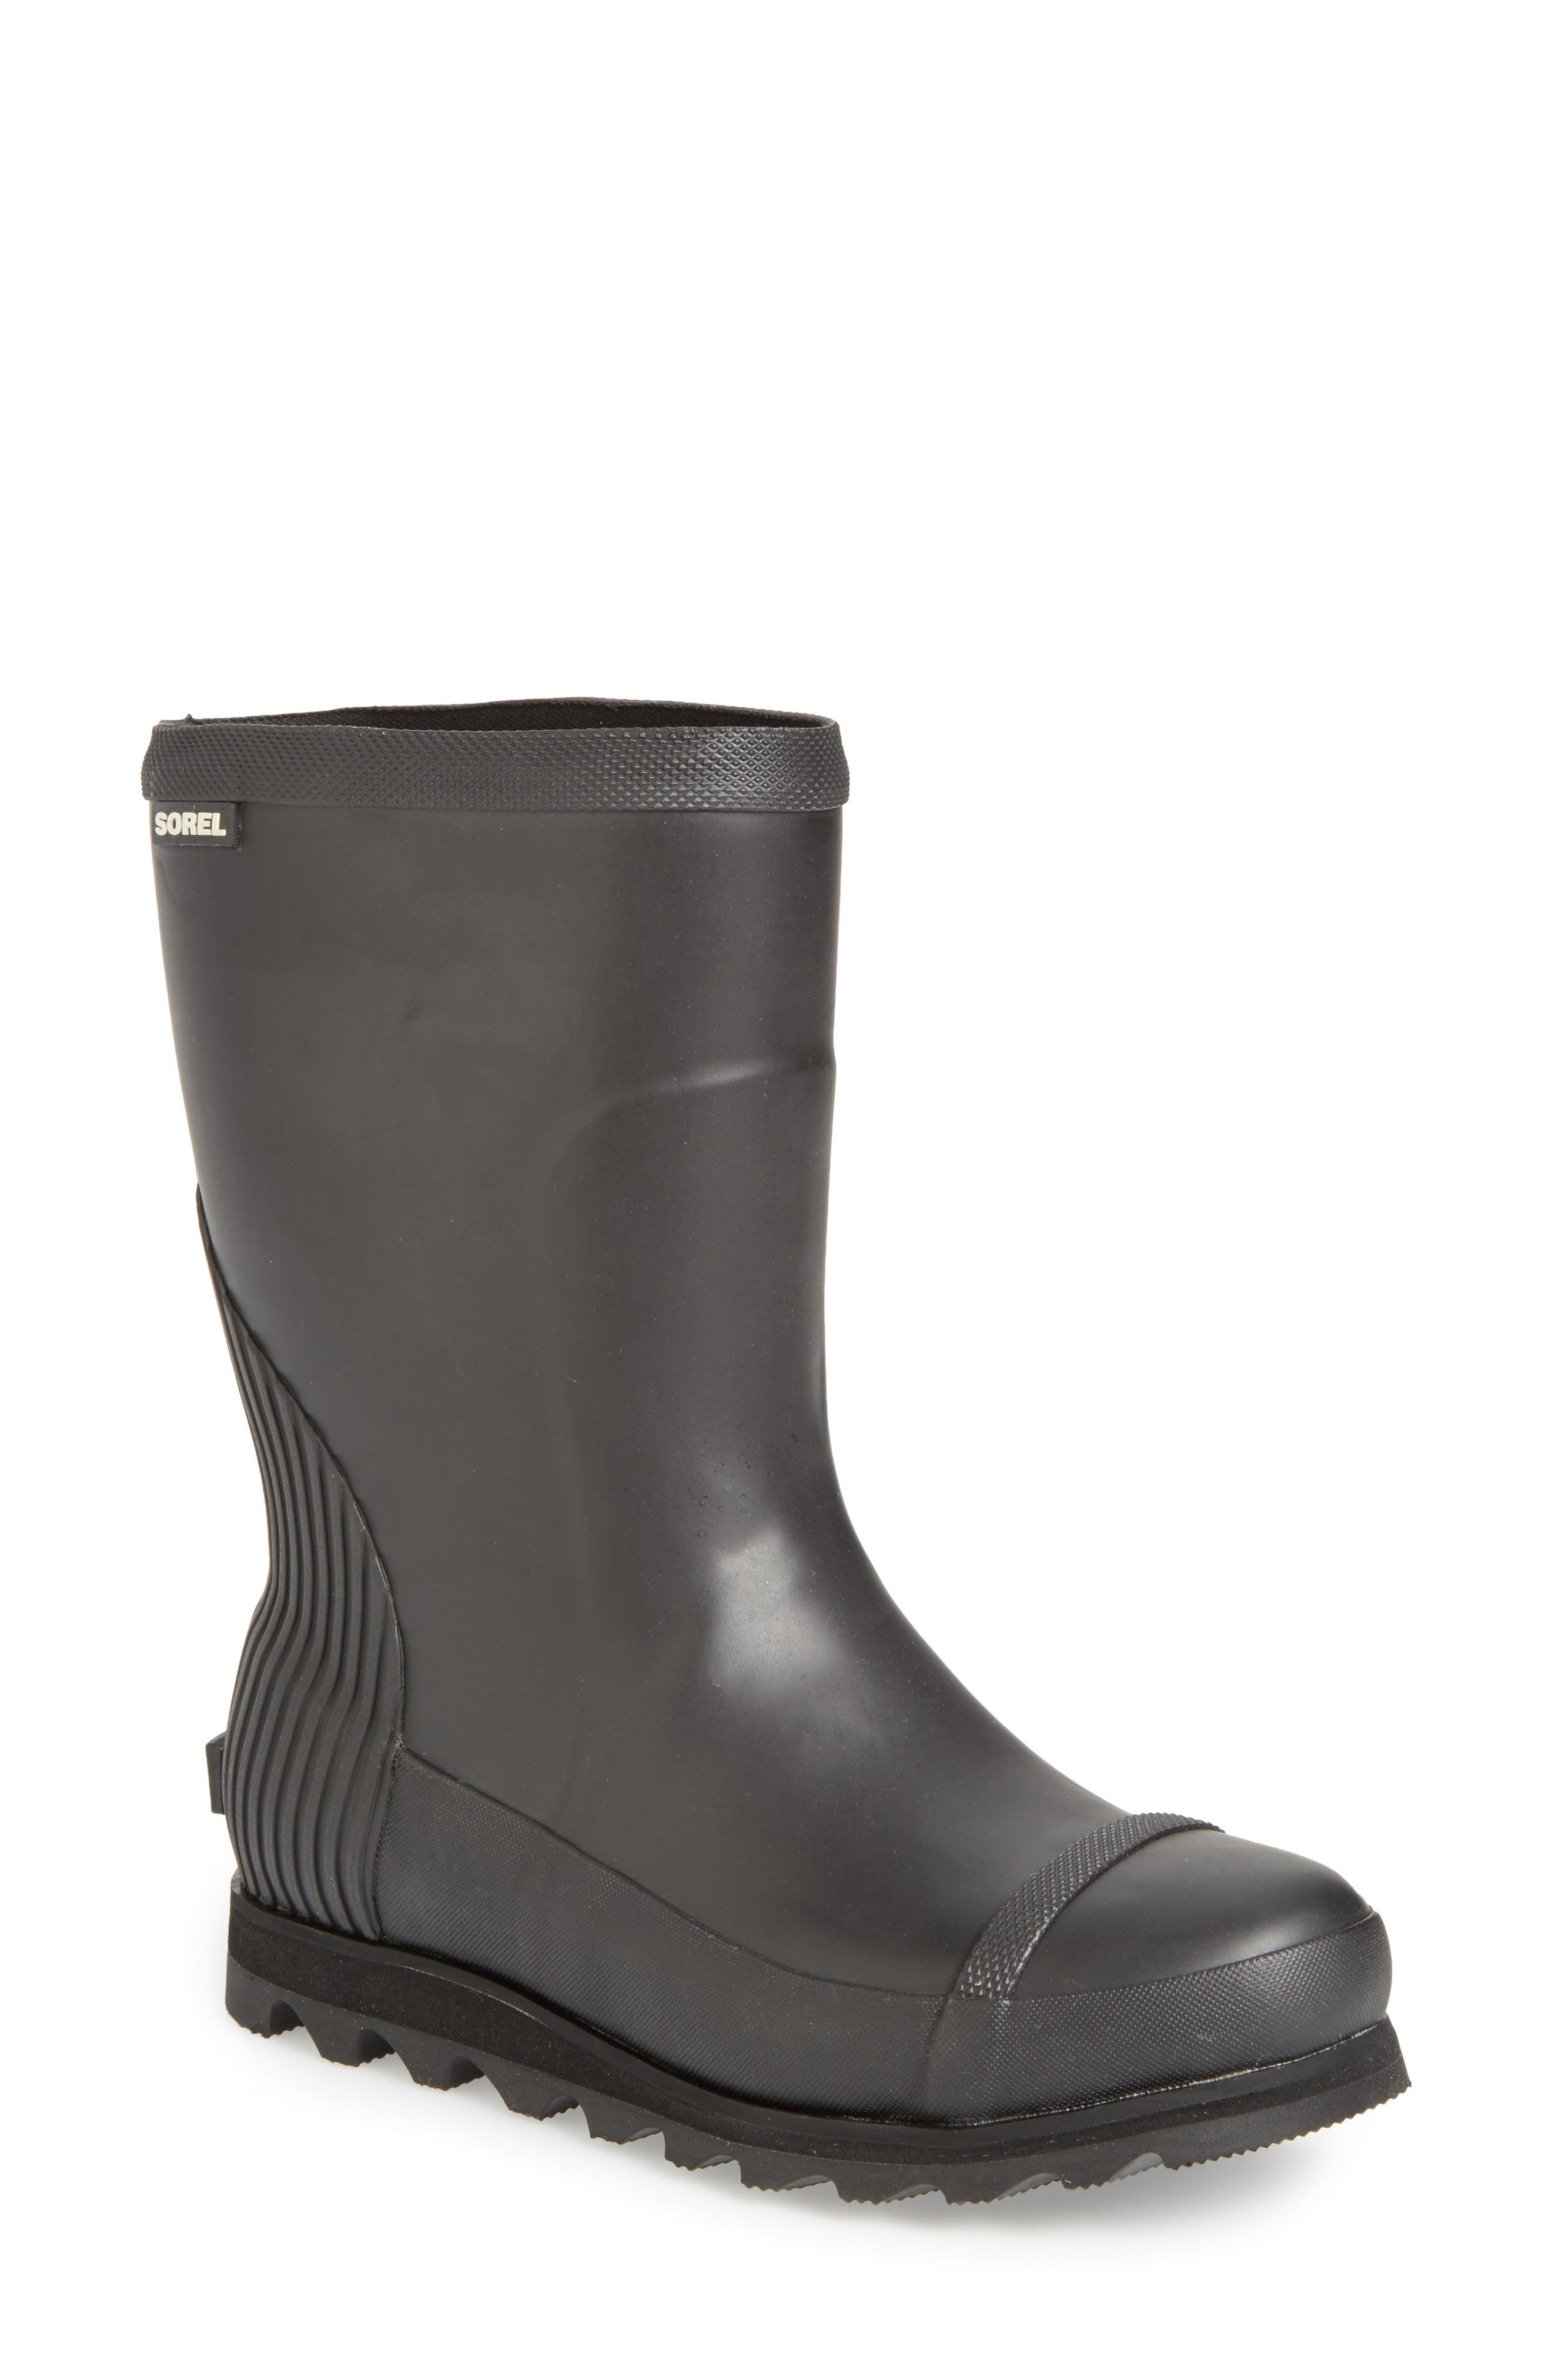 Joan Short Rain Boot,                         Main,                         color, 010